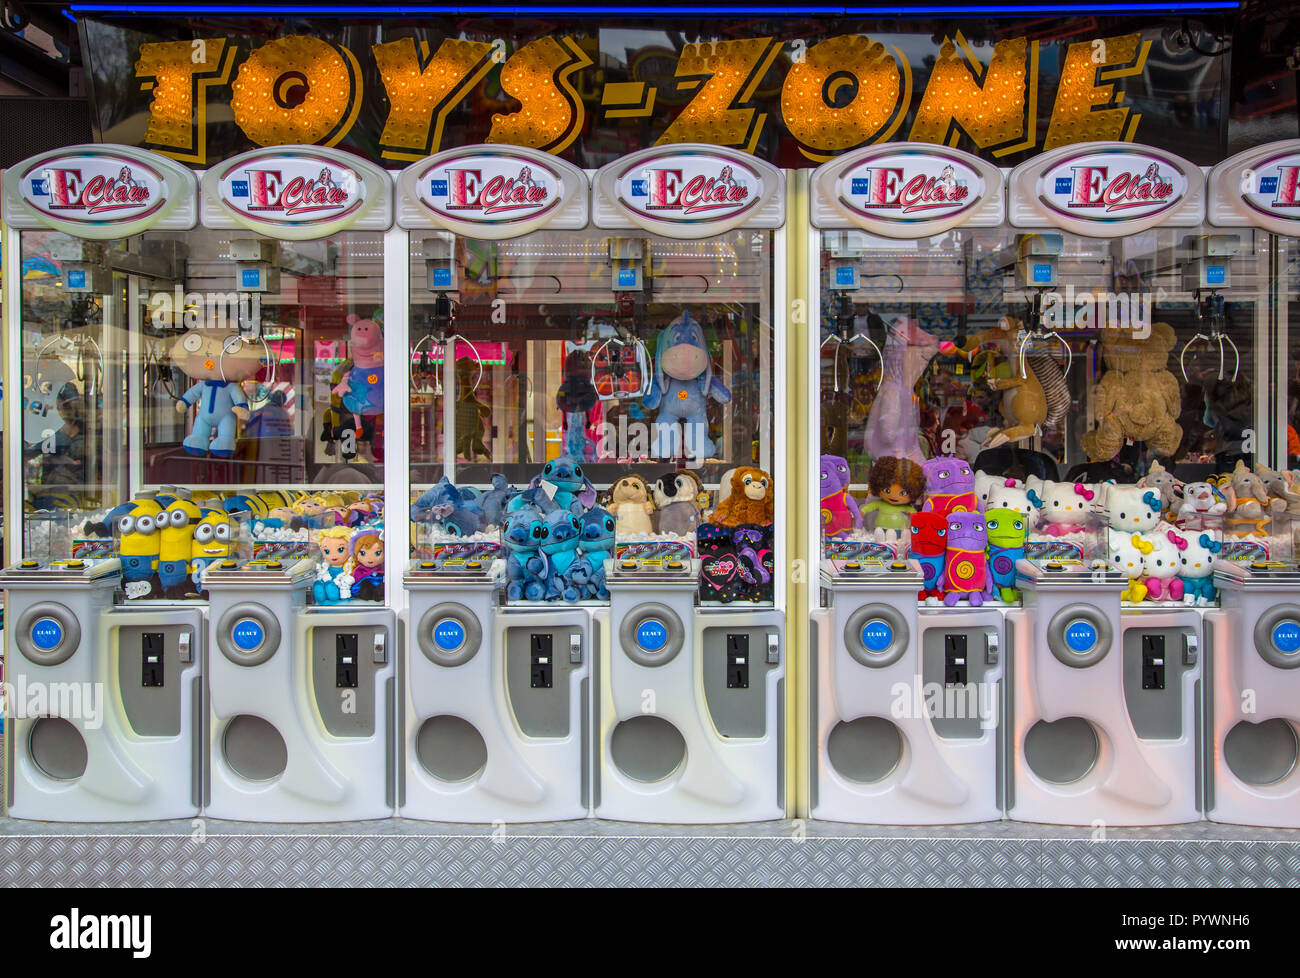 GRONINGEN, THE NETHERLANDS-MAY 17, 2015: Claw crane Arcade machines with cuddly toys and teddy bears in bright colors on a fun fair - Stock Image